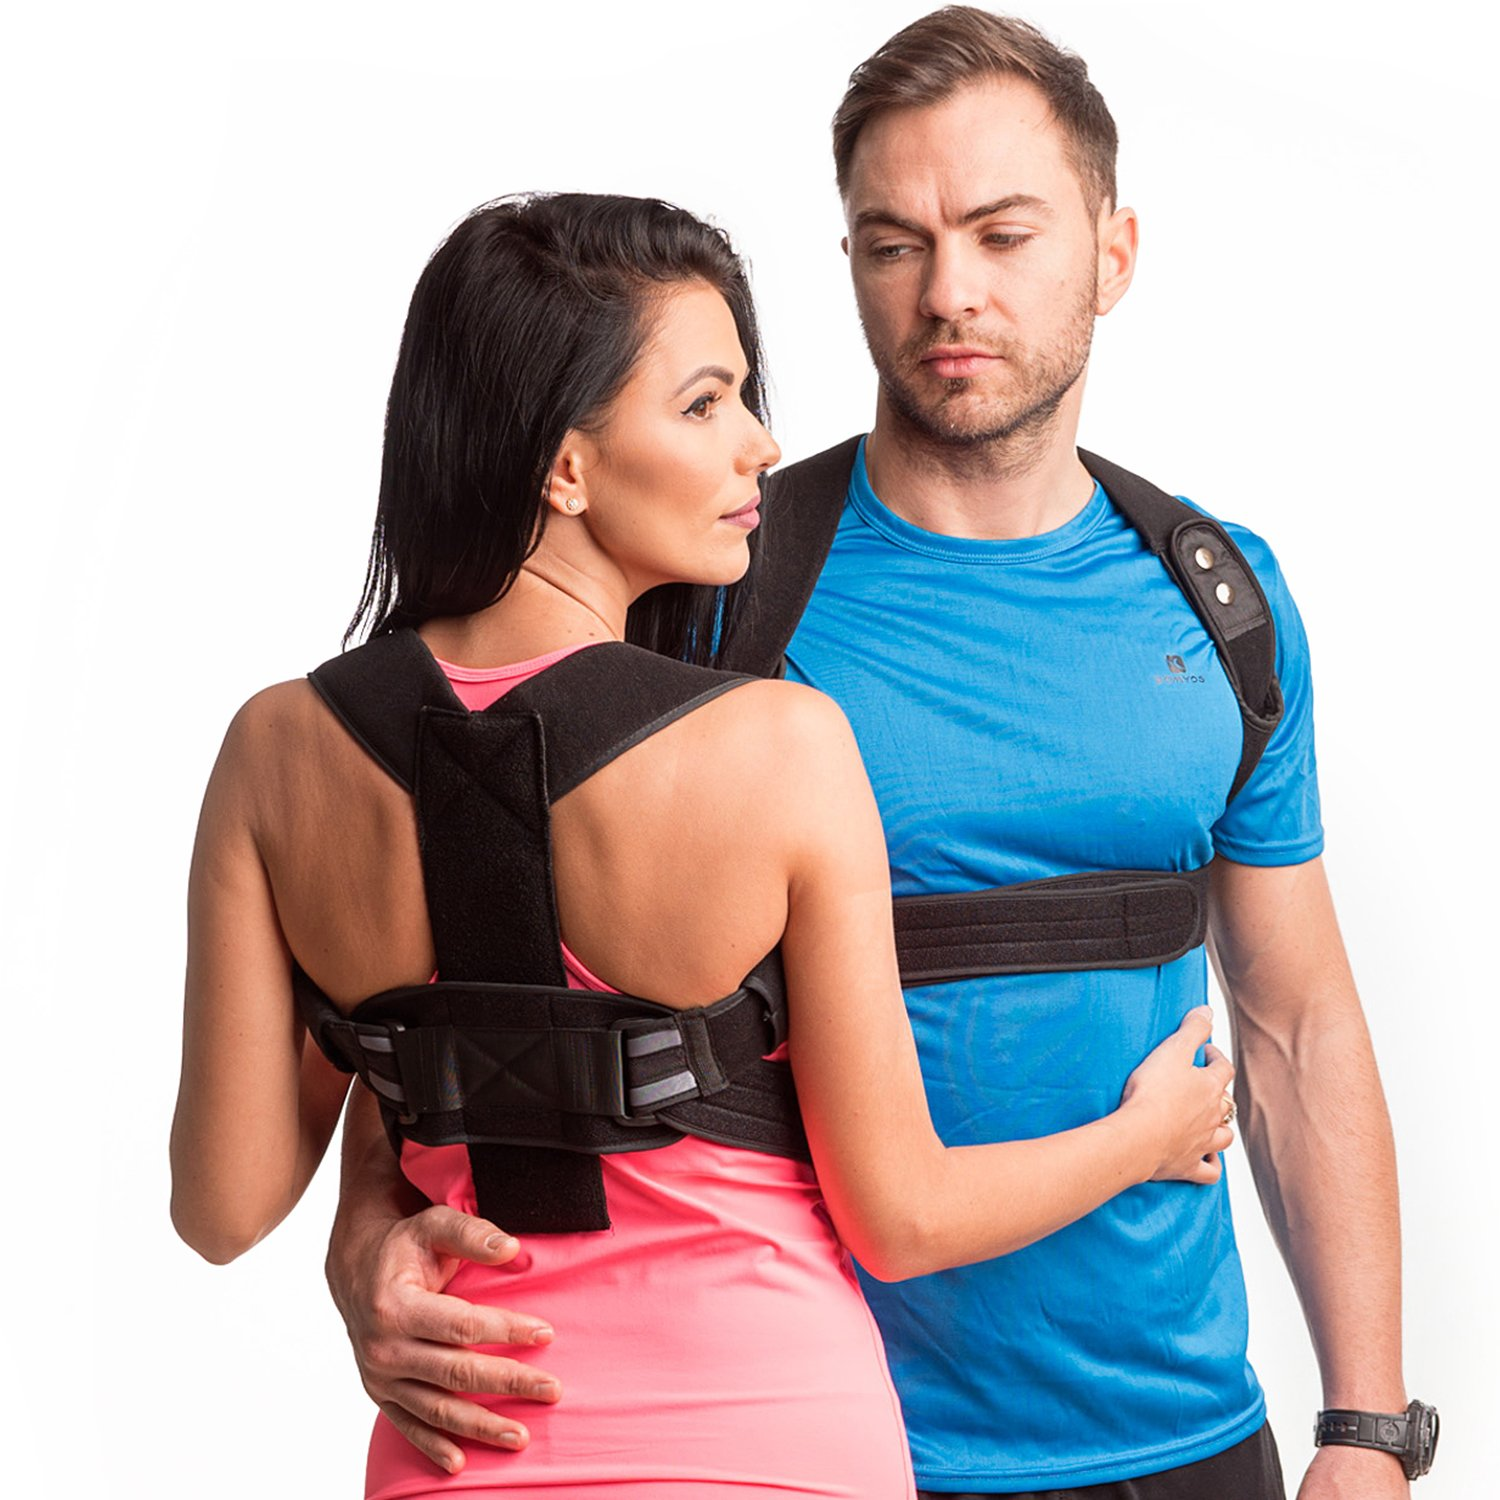 New Back Posture Corrector for Men and Women-Fully Redesigned Posture Brace for Maximum Comfort Thoracic Brace- Clavicle Support Man for Slouching & Hunching -Posture Support with Underarms Pads-XXL